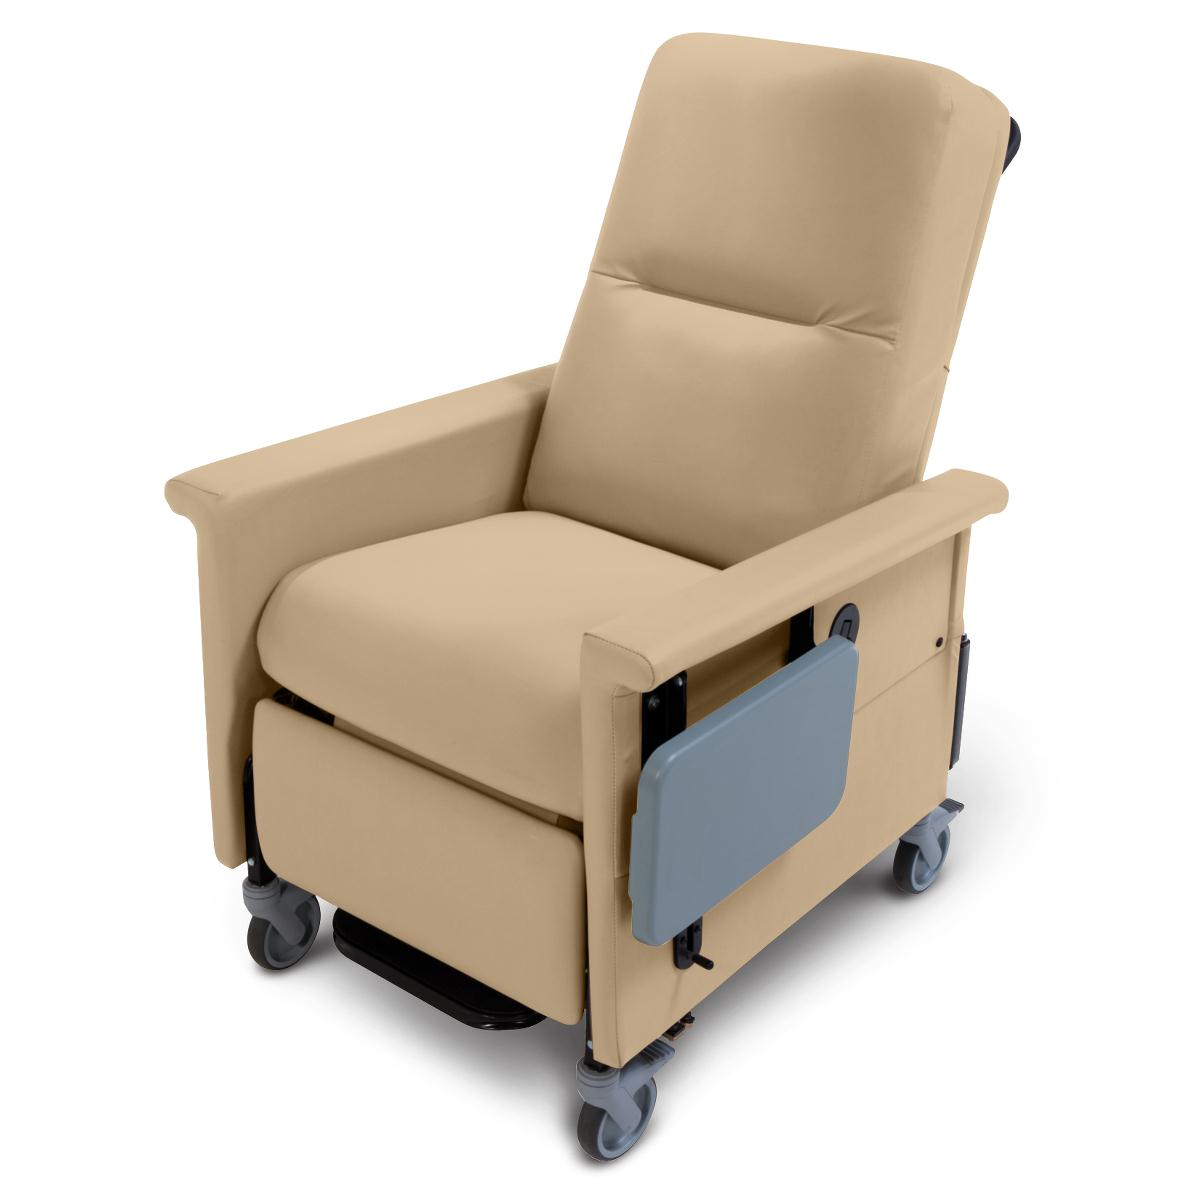 86 Series Bariatric Recliner by Ch&ion Chair | Medline Industries Inc.  sc 1 st  Medline & 86 Series Bariatric Recliner by Champion Chair | Medline ... islam-shia.org